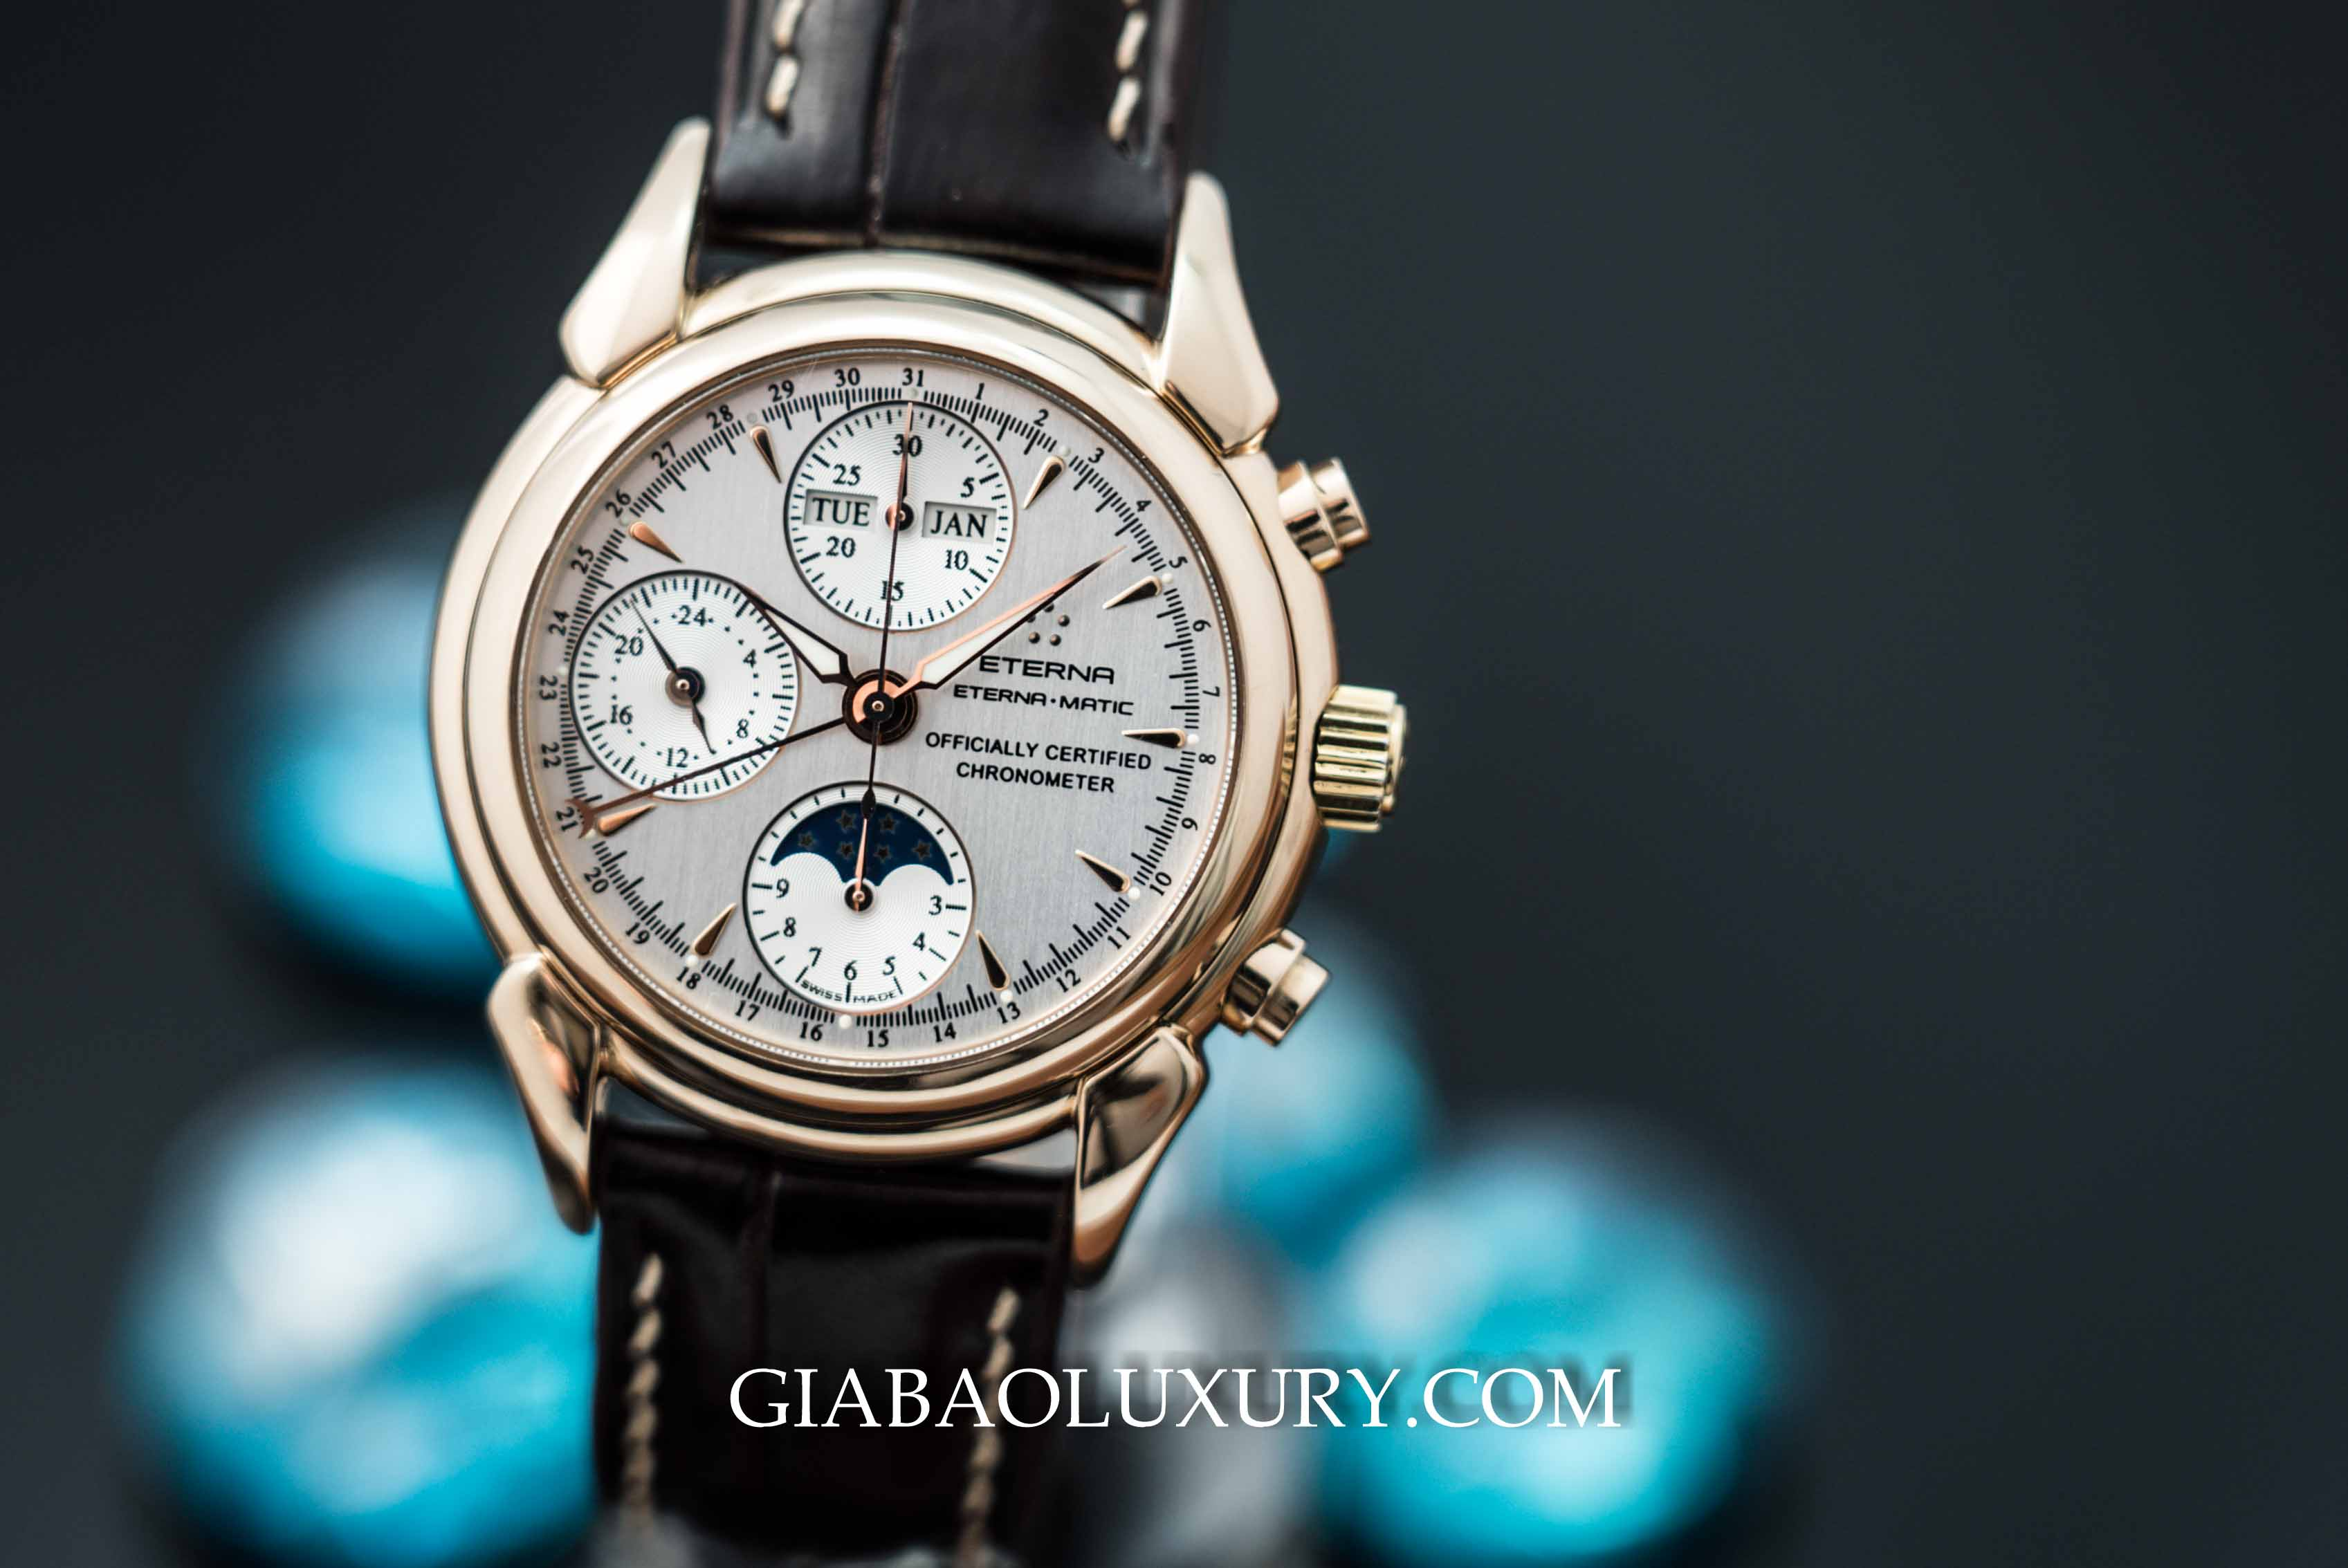 Review đồng hồ Eterna-Matic 1948 Moonphase Chronograph